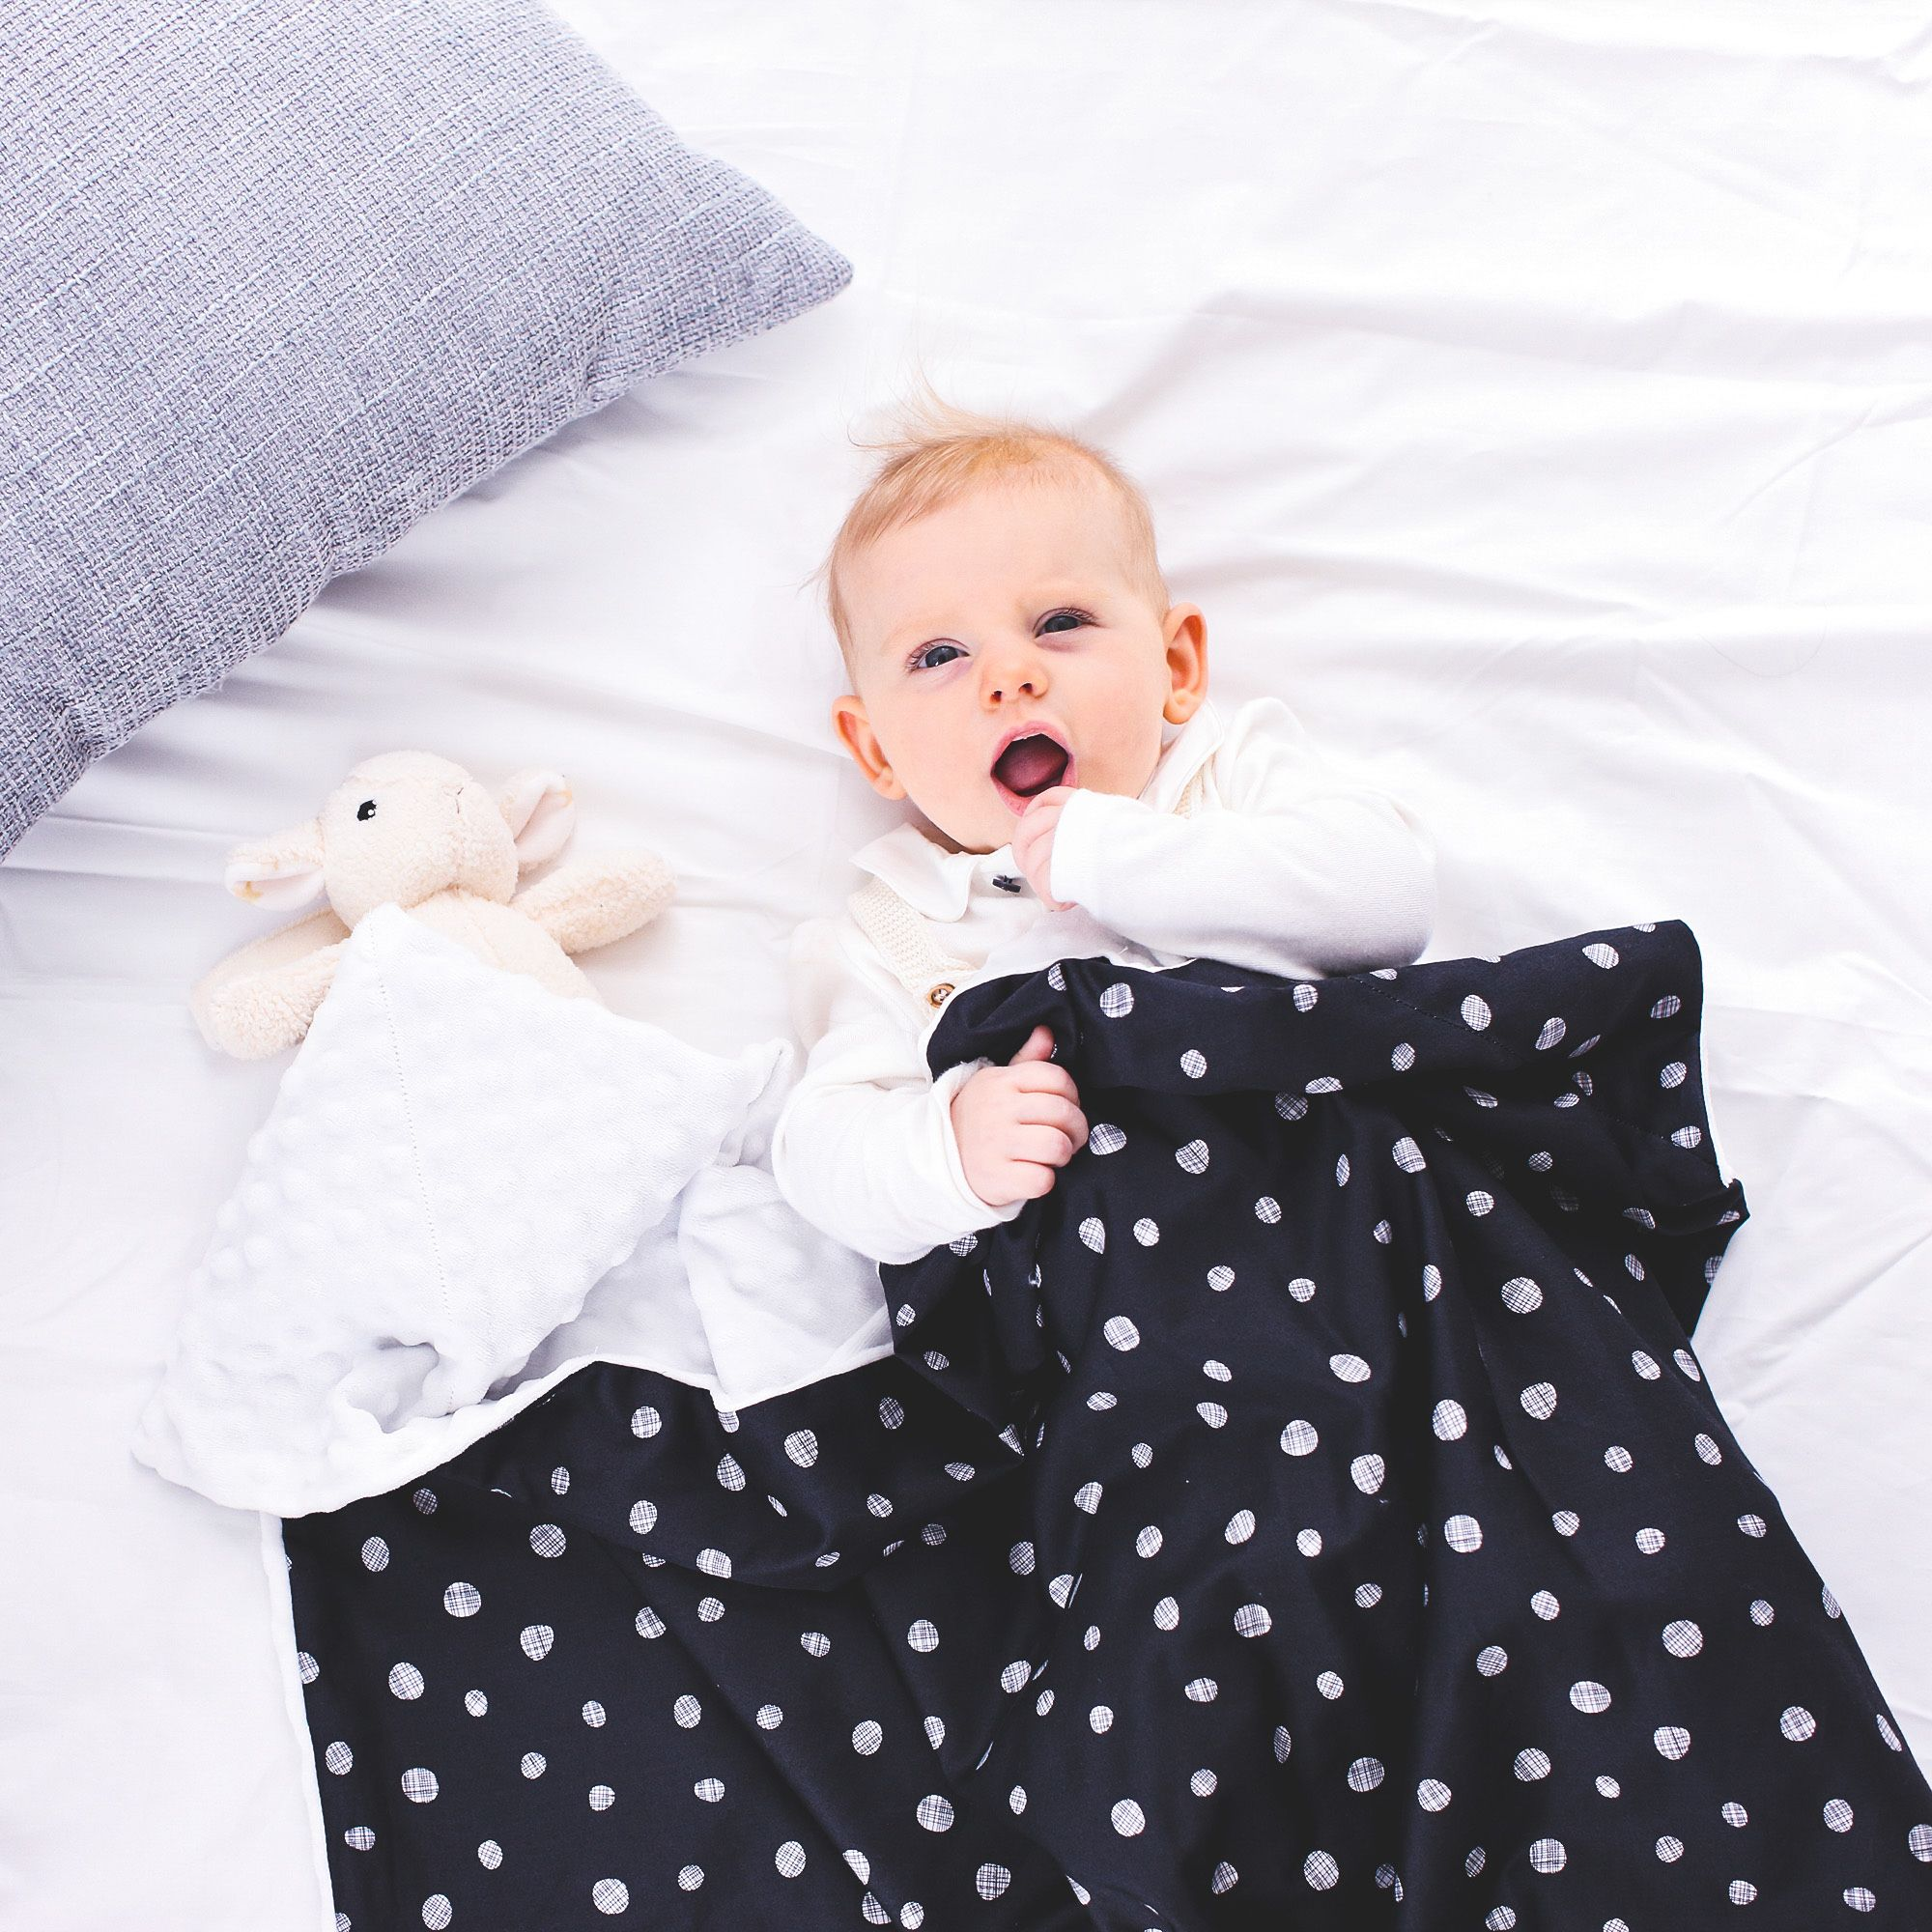 this is sensationally soft, ideal for sensitive skin. The textured dots are fun and soothing for babies and toddlers to touch and feel. The other side of this reversible kids throw is smooth like satin, making it great for tummy time and other nursery floor activities.       #jolimolibrands #donoanddono #babyg #cutebaby #babymusthaves #newbornessentials  #babygoods #simplychildren #newborn #organic #muslin #shopsmall #babyshower #babyboy #nursery #babyblanket #swaddling #babyessentials